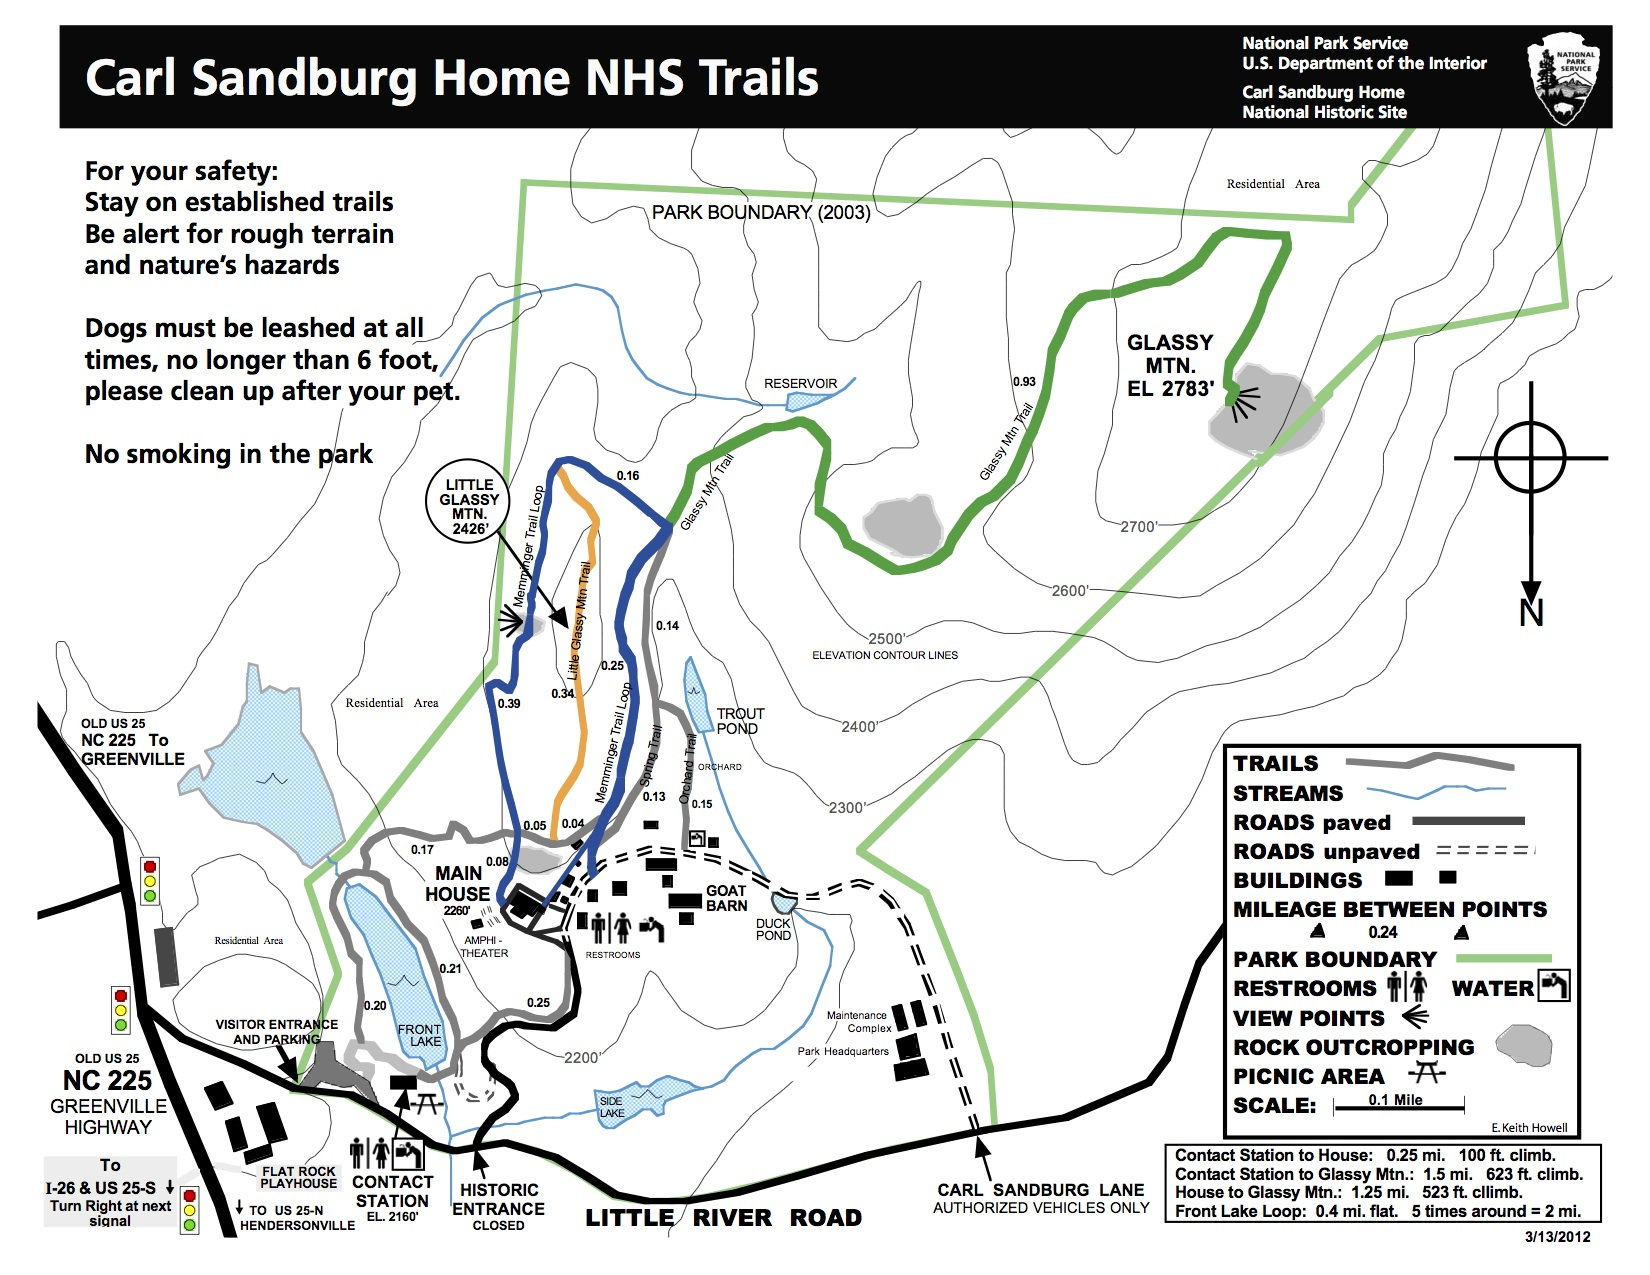 Carl Sandburg Home trail map